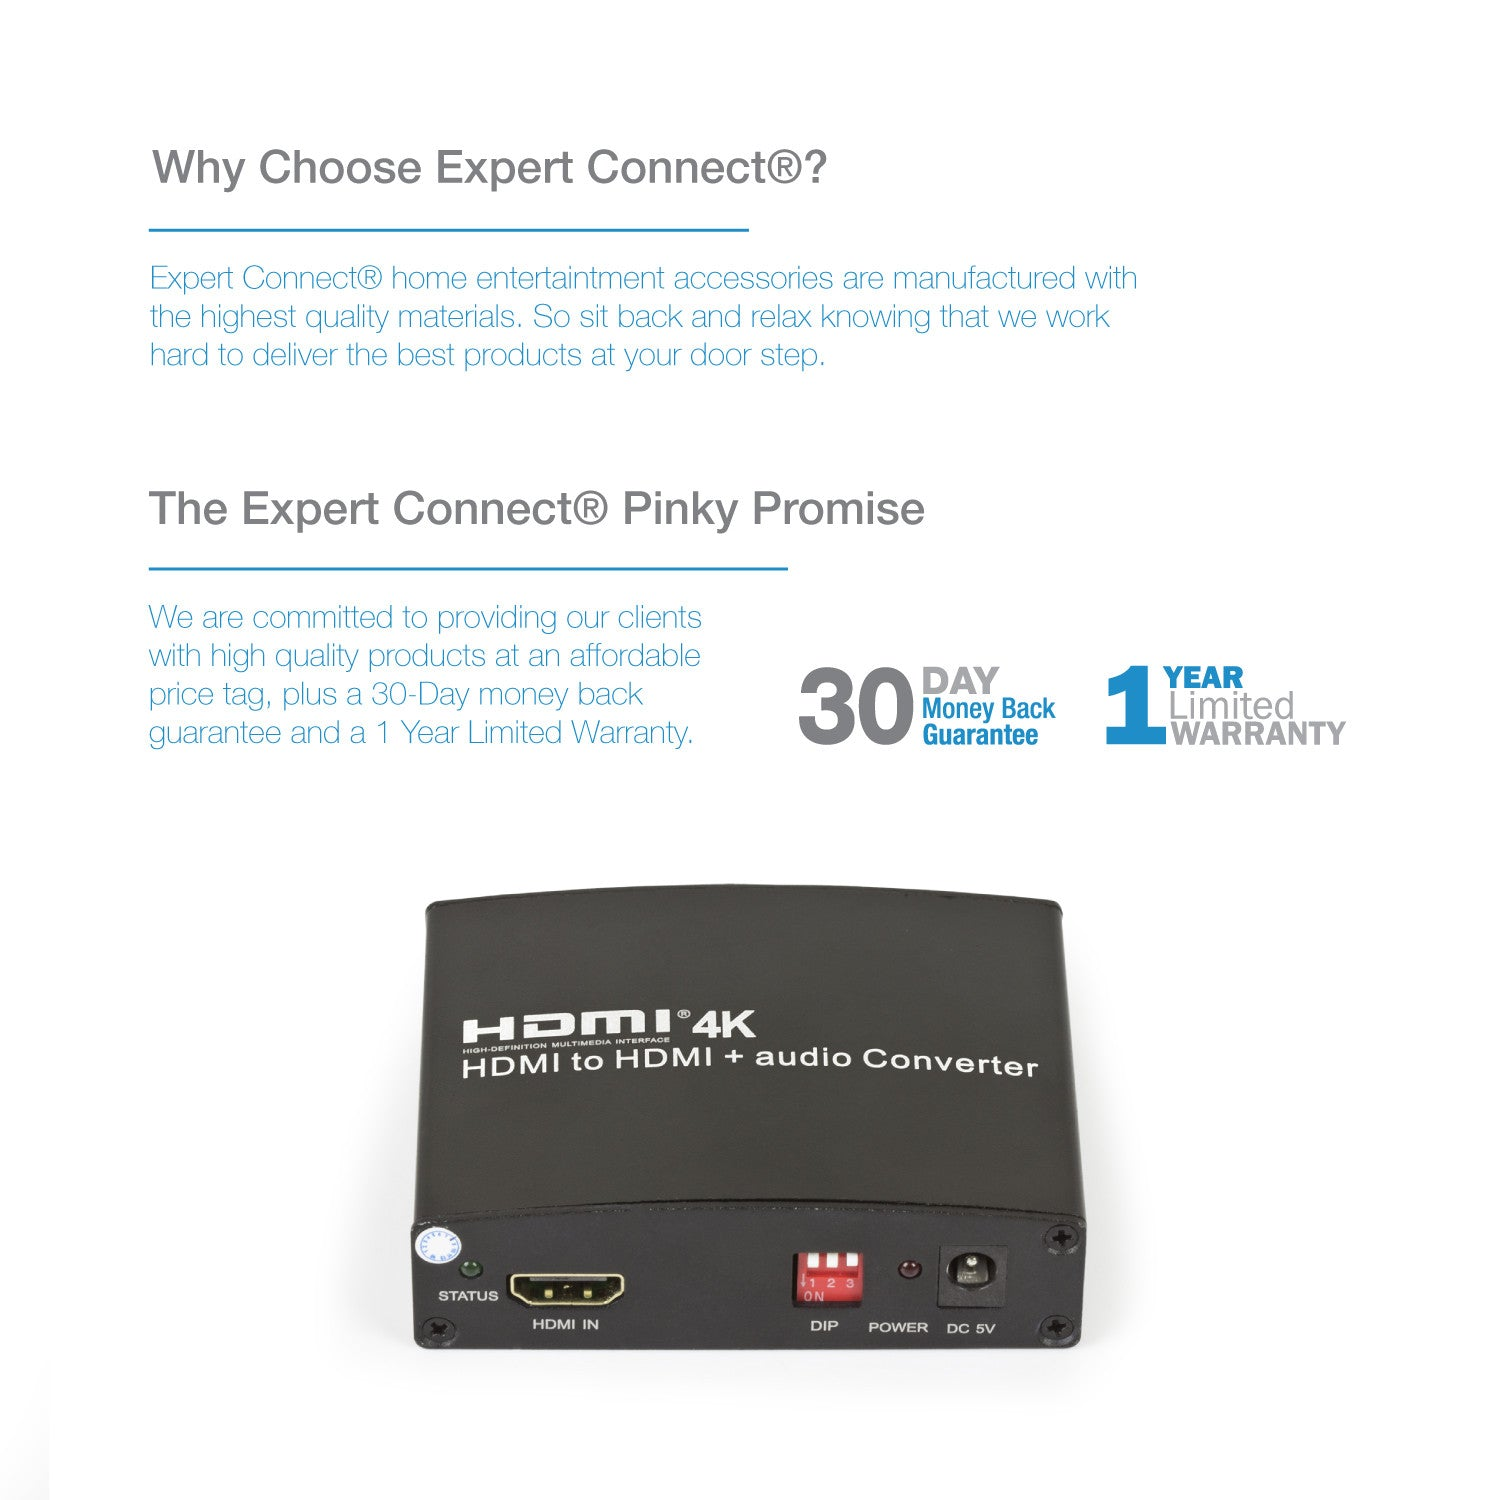 4K/2K@30Hz | Coaxial / Optical (SPDIF / Toslink) / 3.5mm Jack - Expert Connect